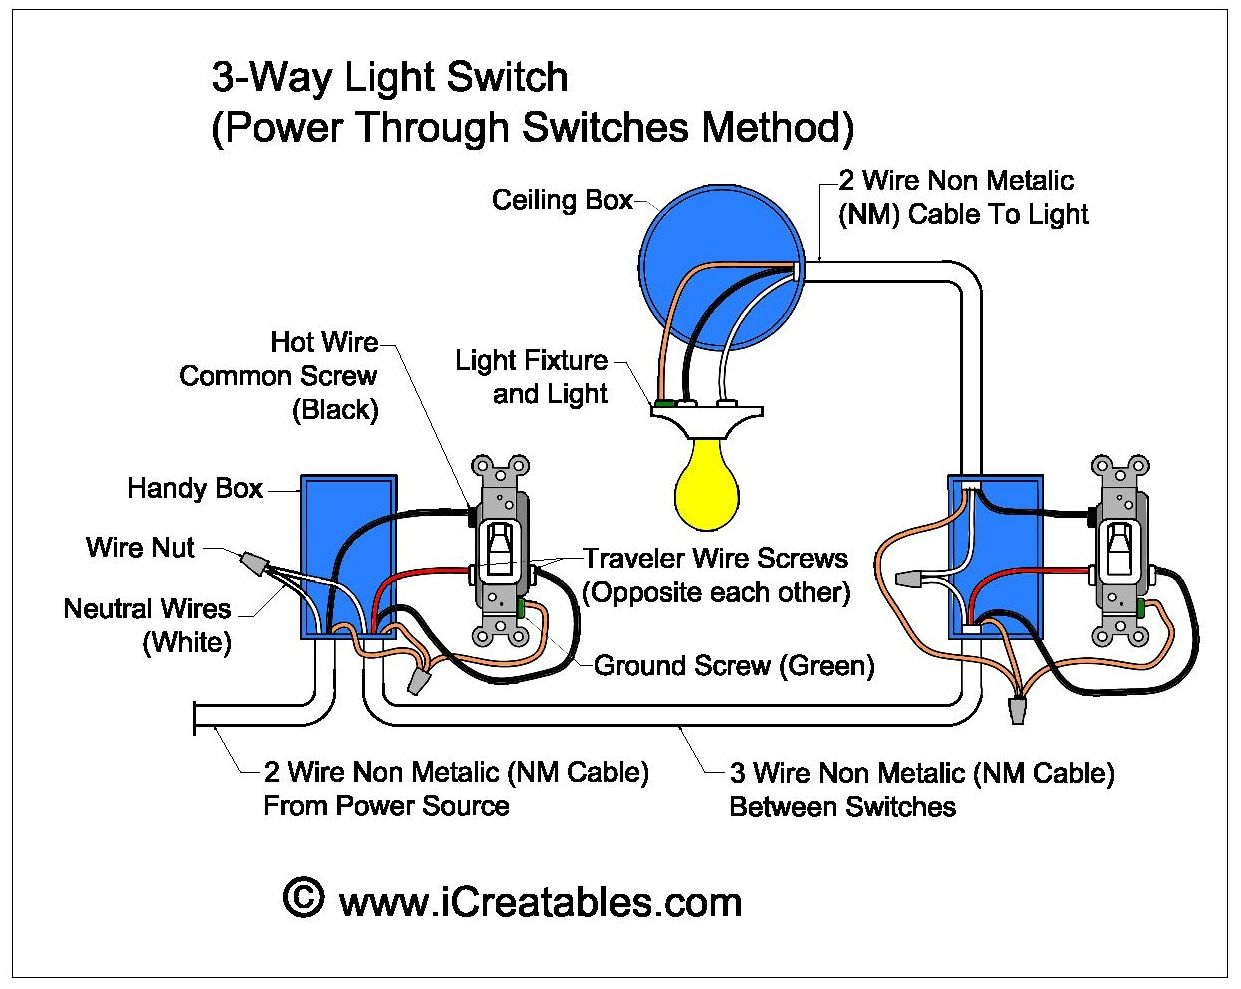 19 Wiring Diagram For 3 Way Light Switch Technique Three